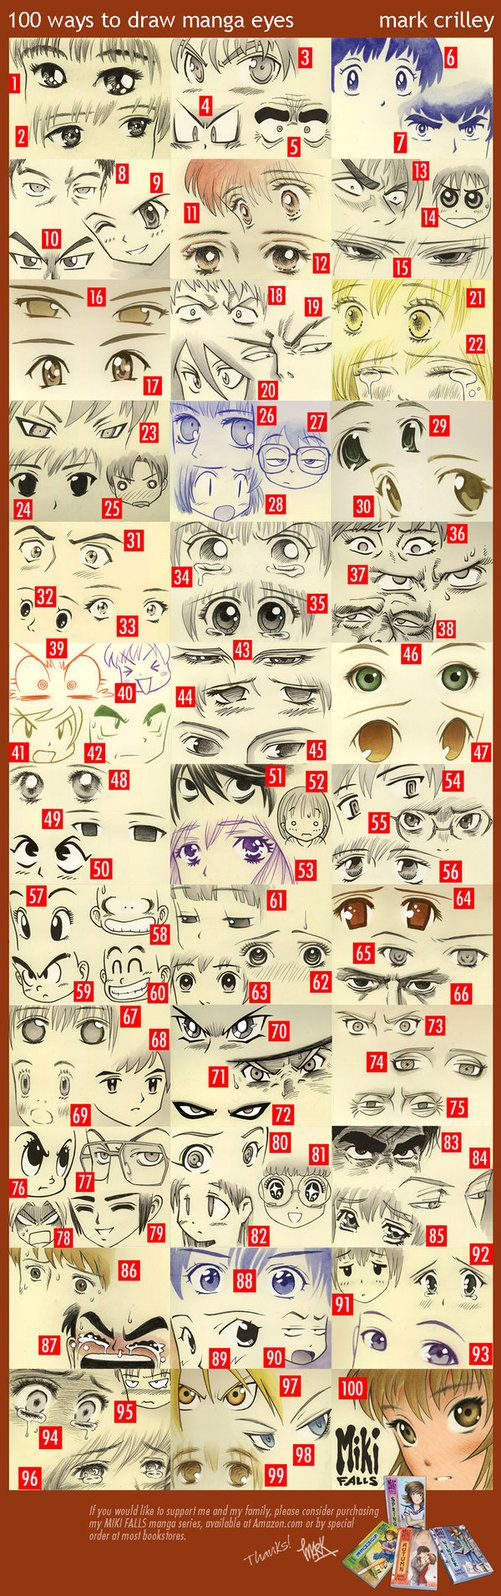 100 ways to draw Manga eyes by Mark Crilley on Deviantart and Youtube.